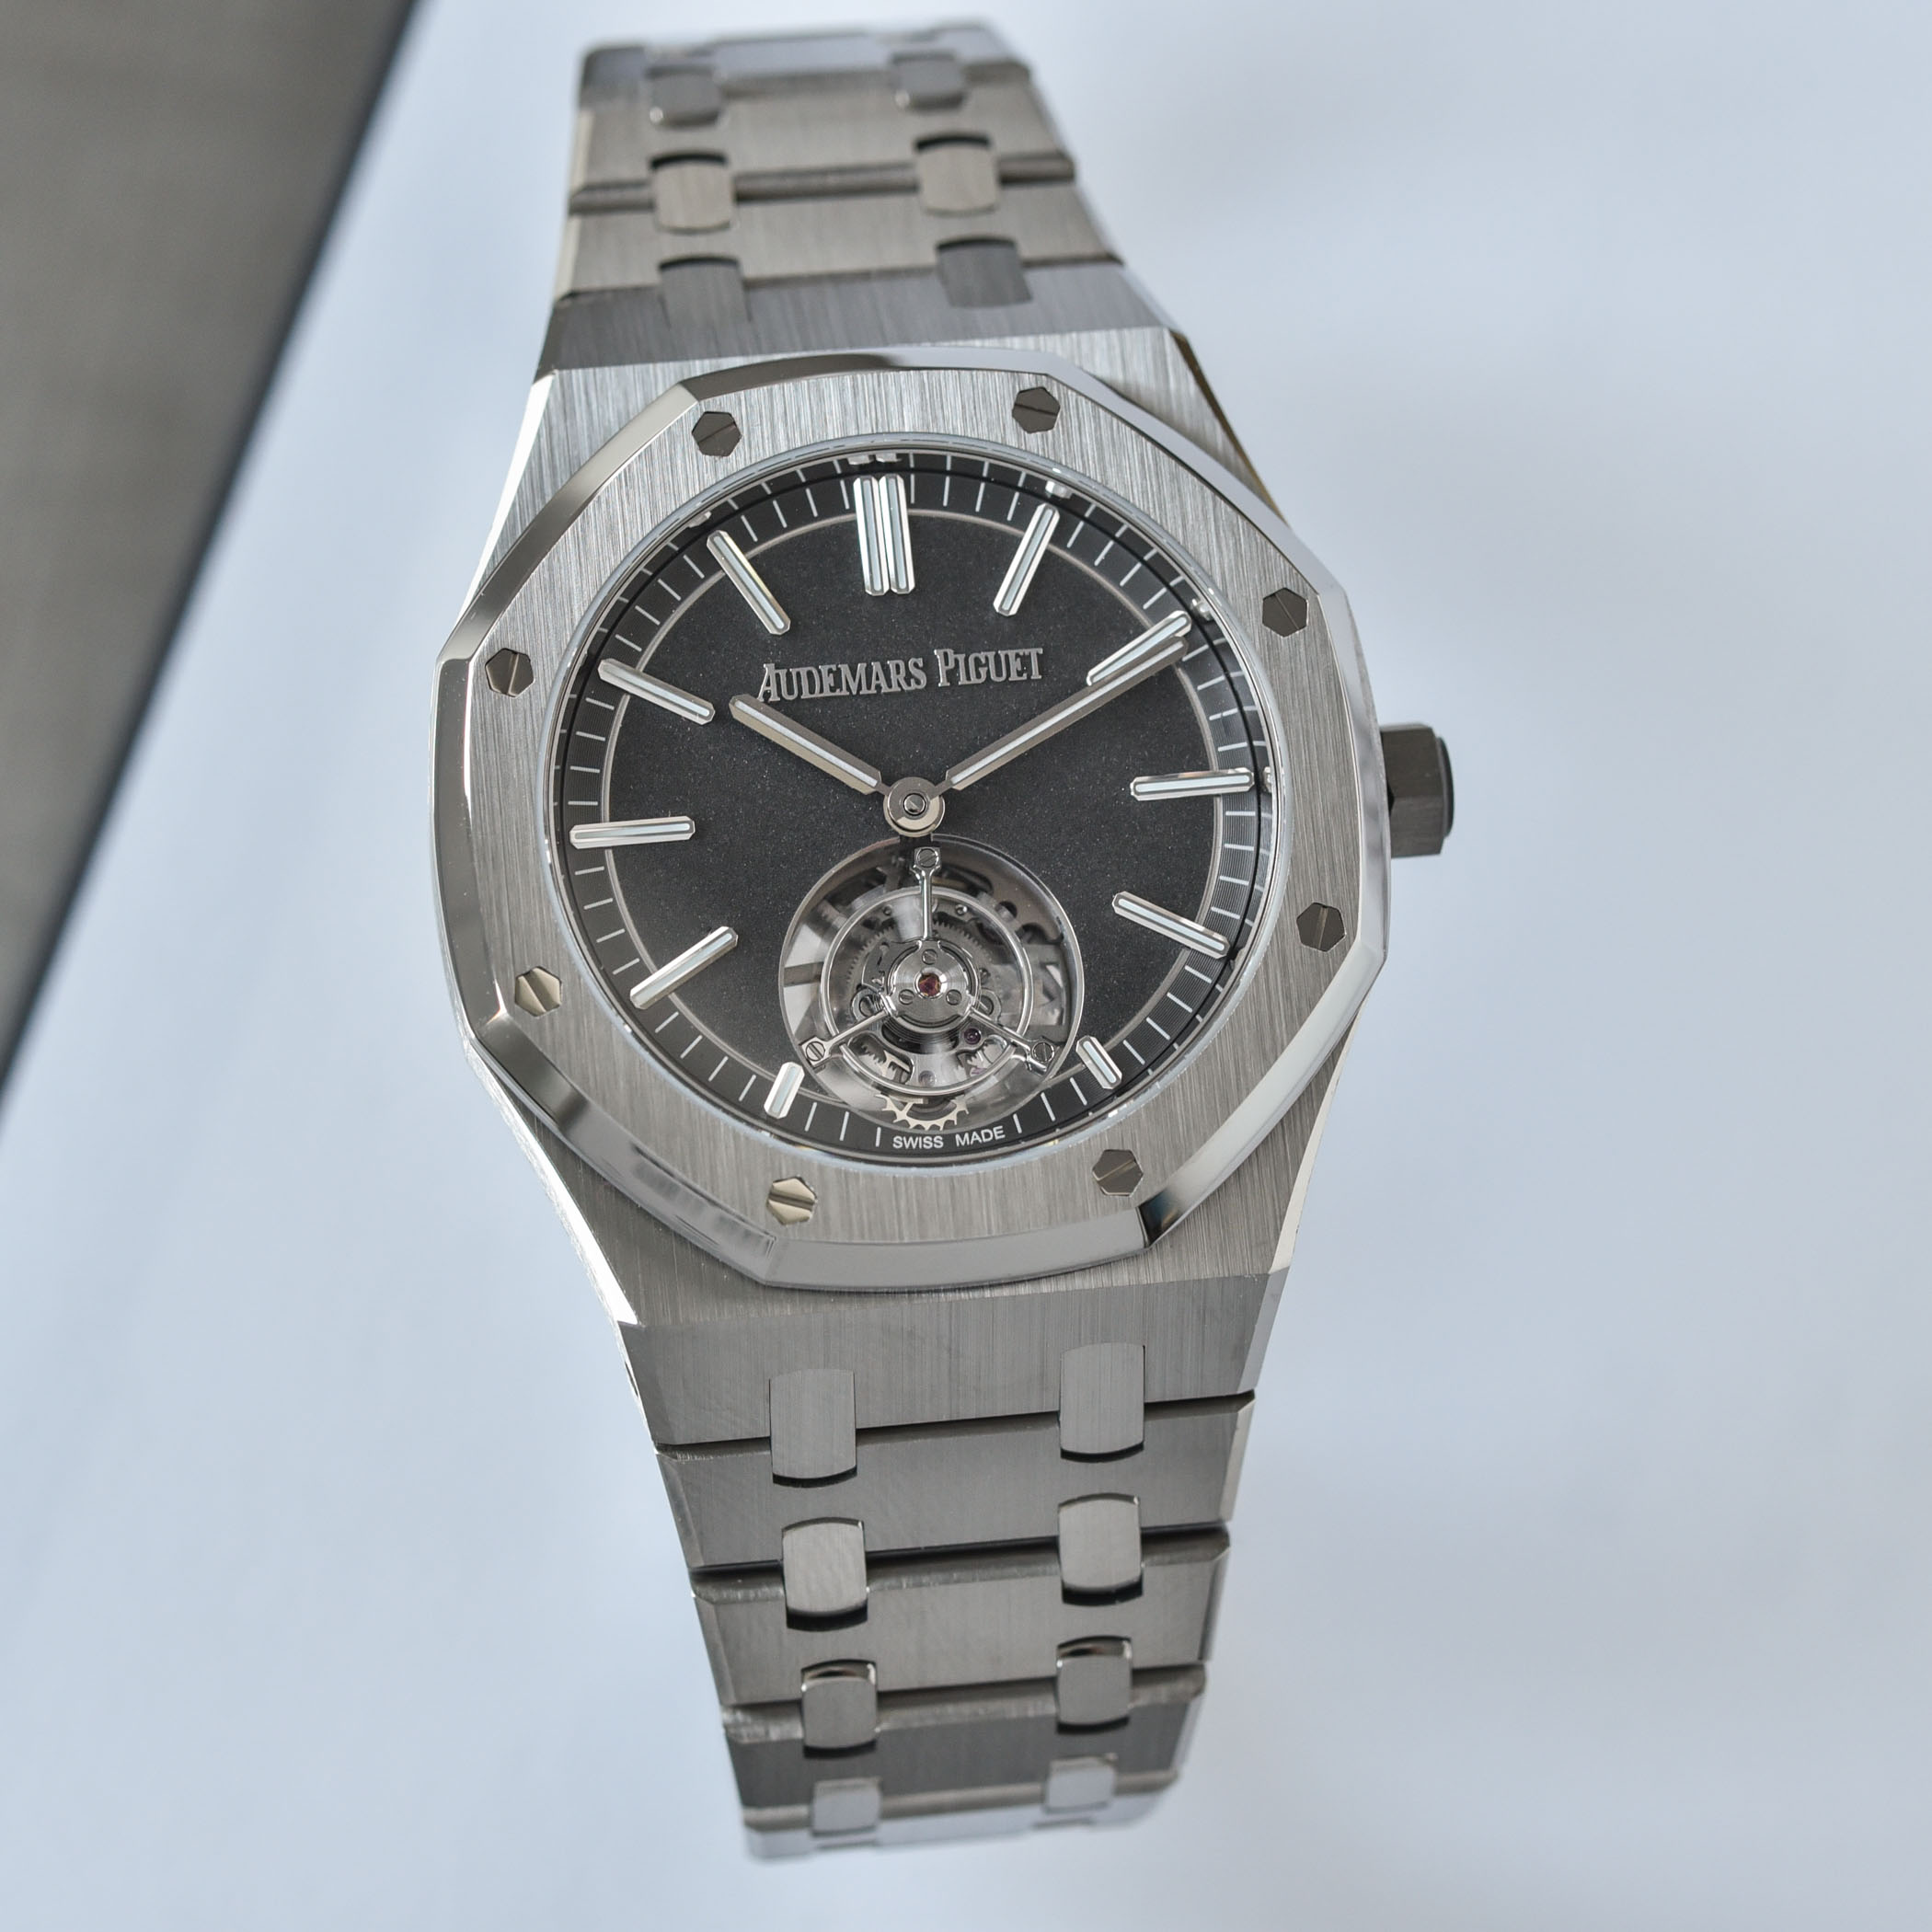 Audemars Piguet Royal Oak Selfwinding Flying Tourbillon 41mm Titanium 26530TI.OO.1220TI.01